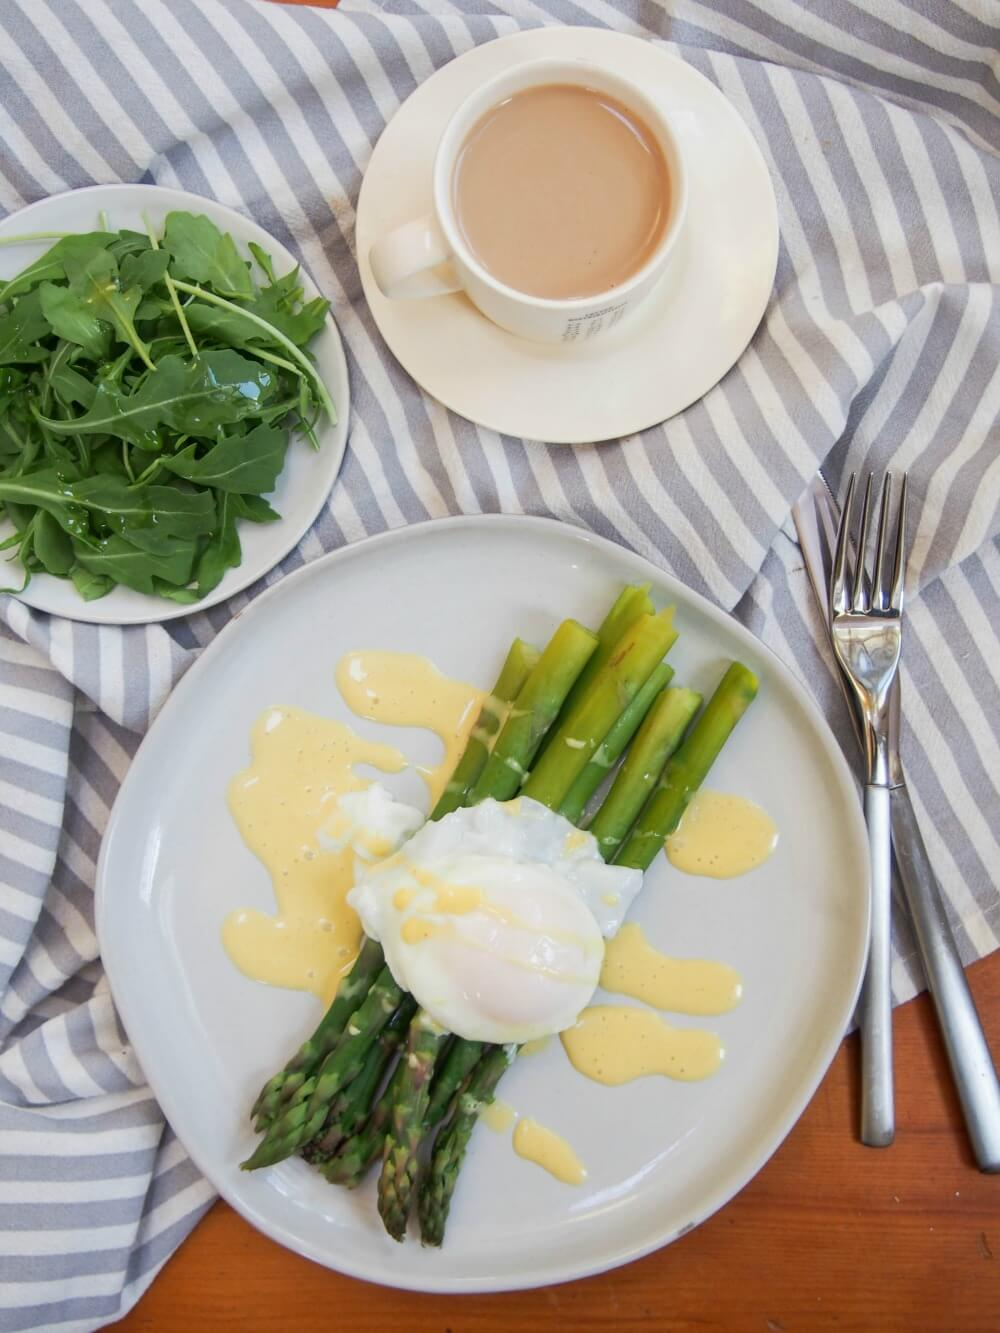 Asparagus with easy blender hollandaise sauce with poached egg and side salad